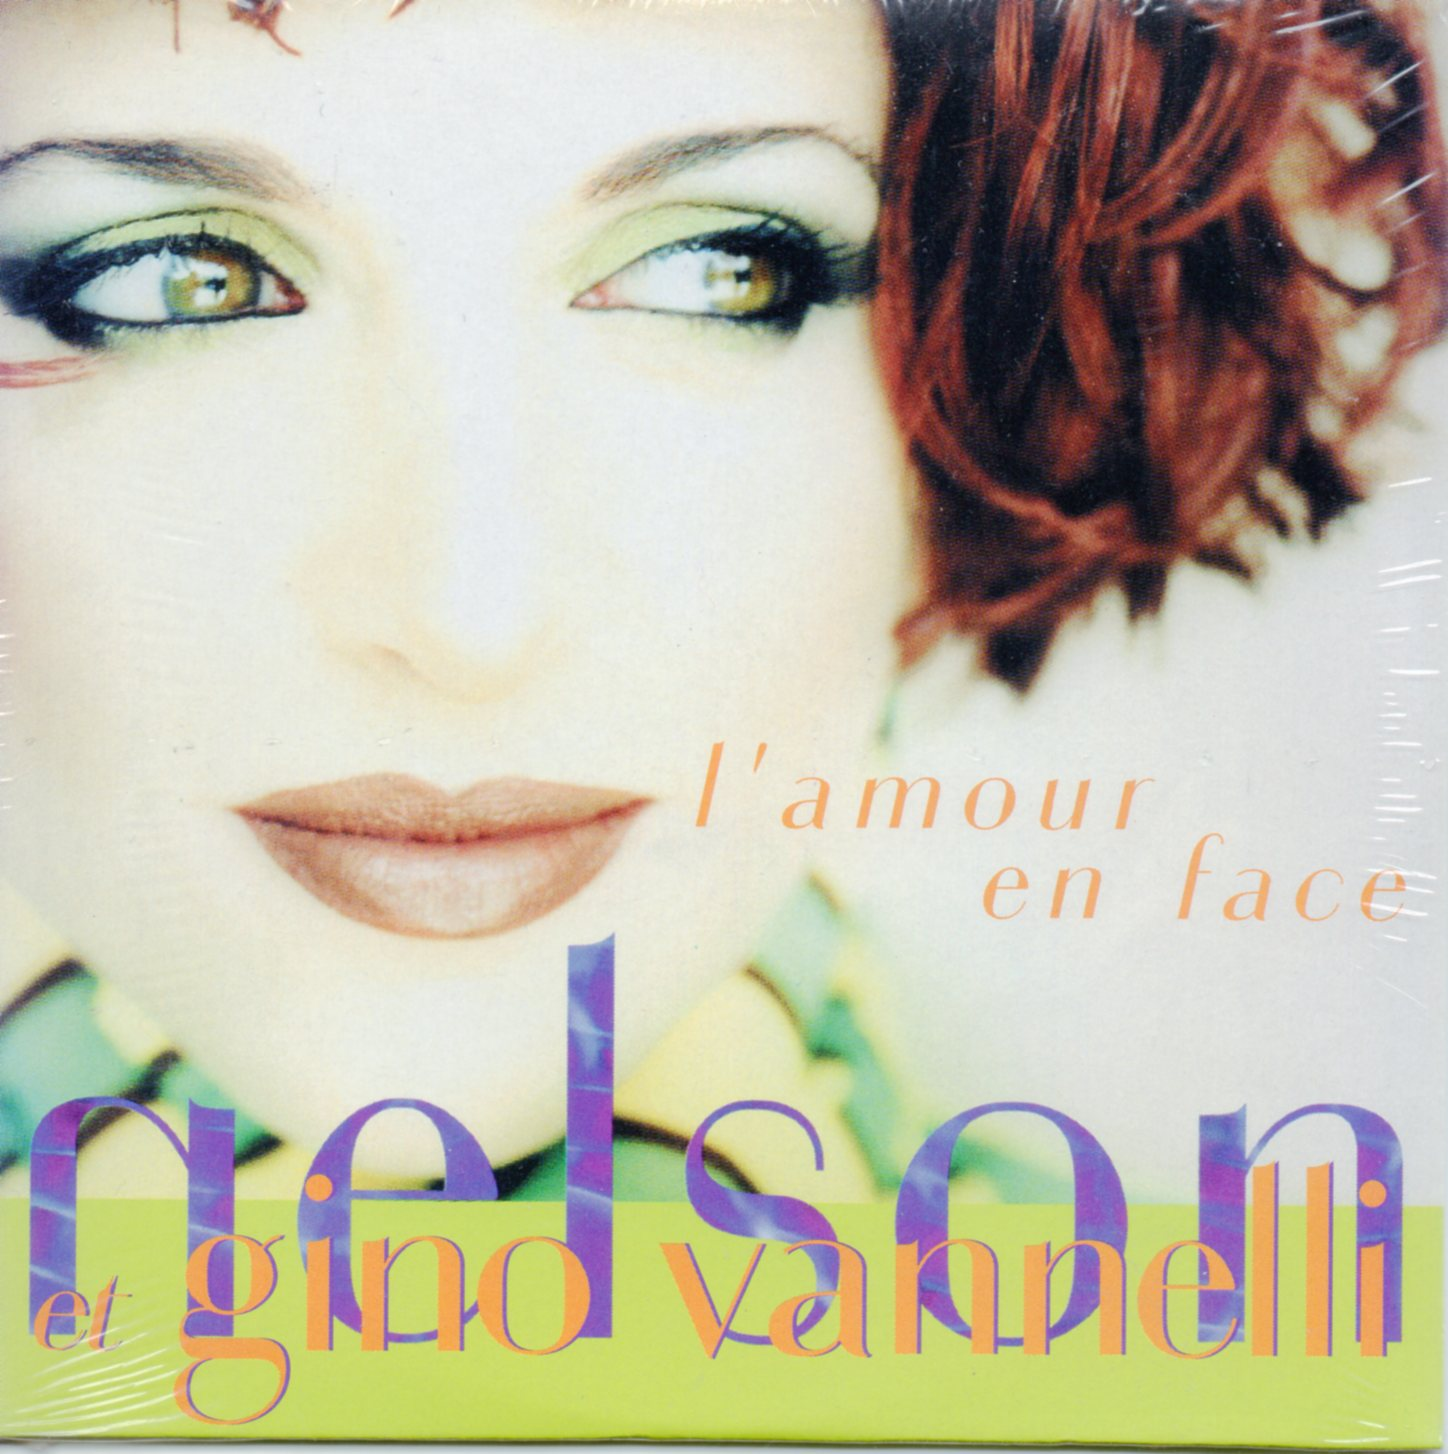 NELSON & GINO VANELLI - L'amour en face 3-track CARD SLEEVE - CD single